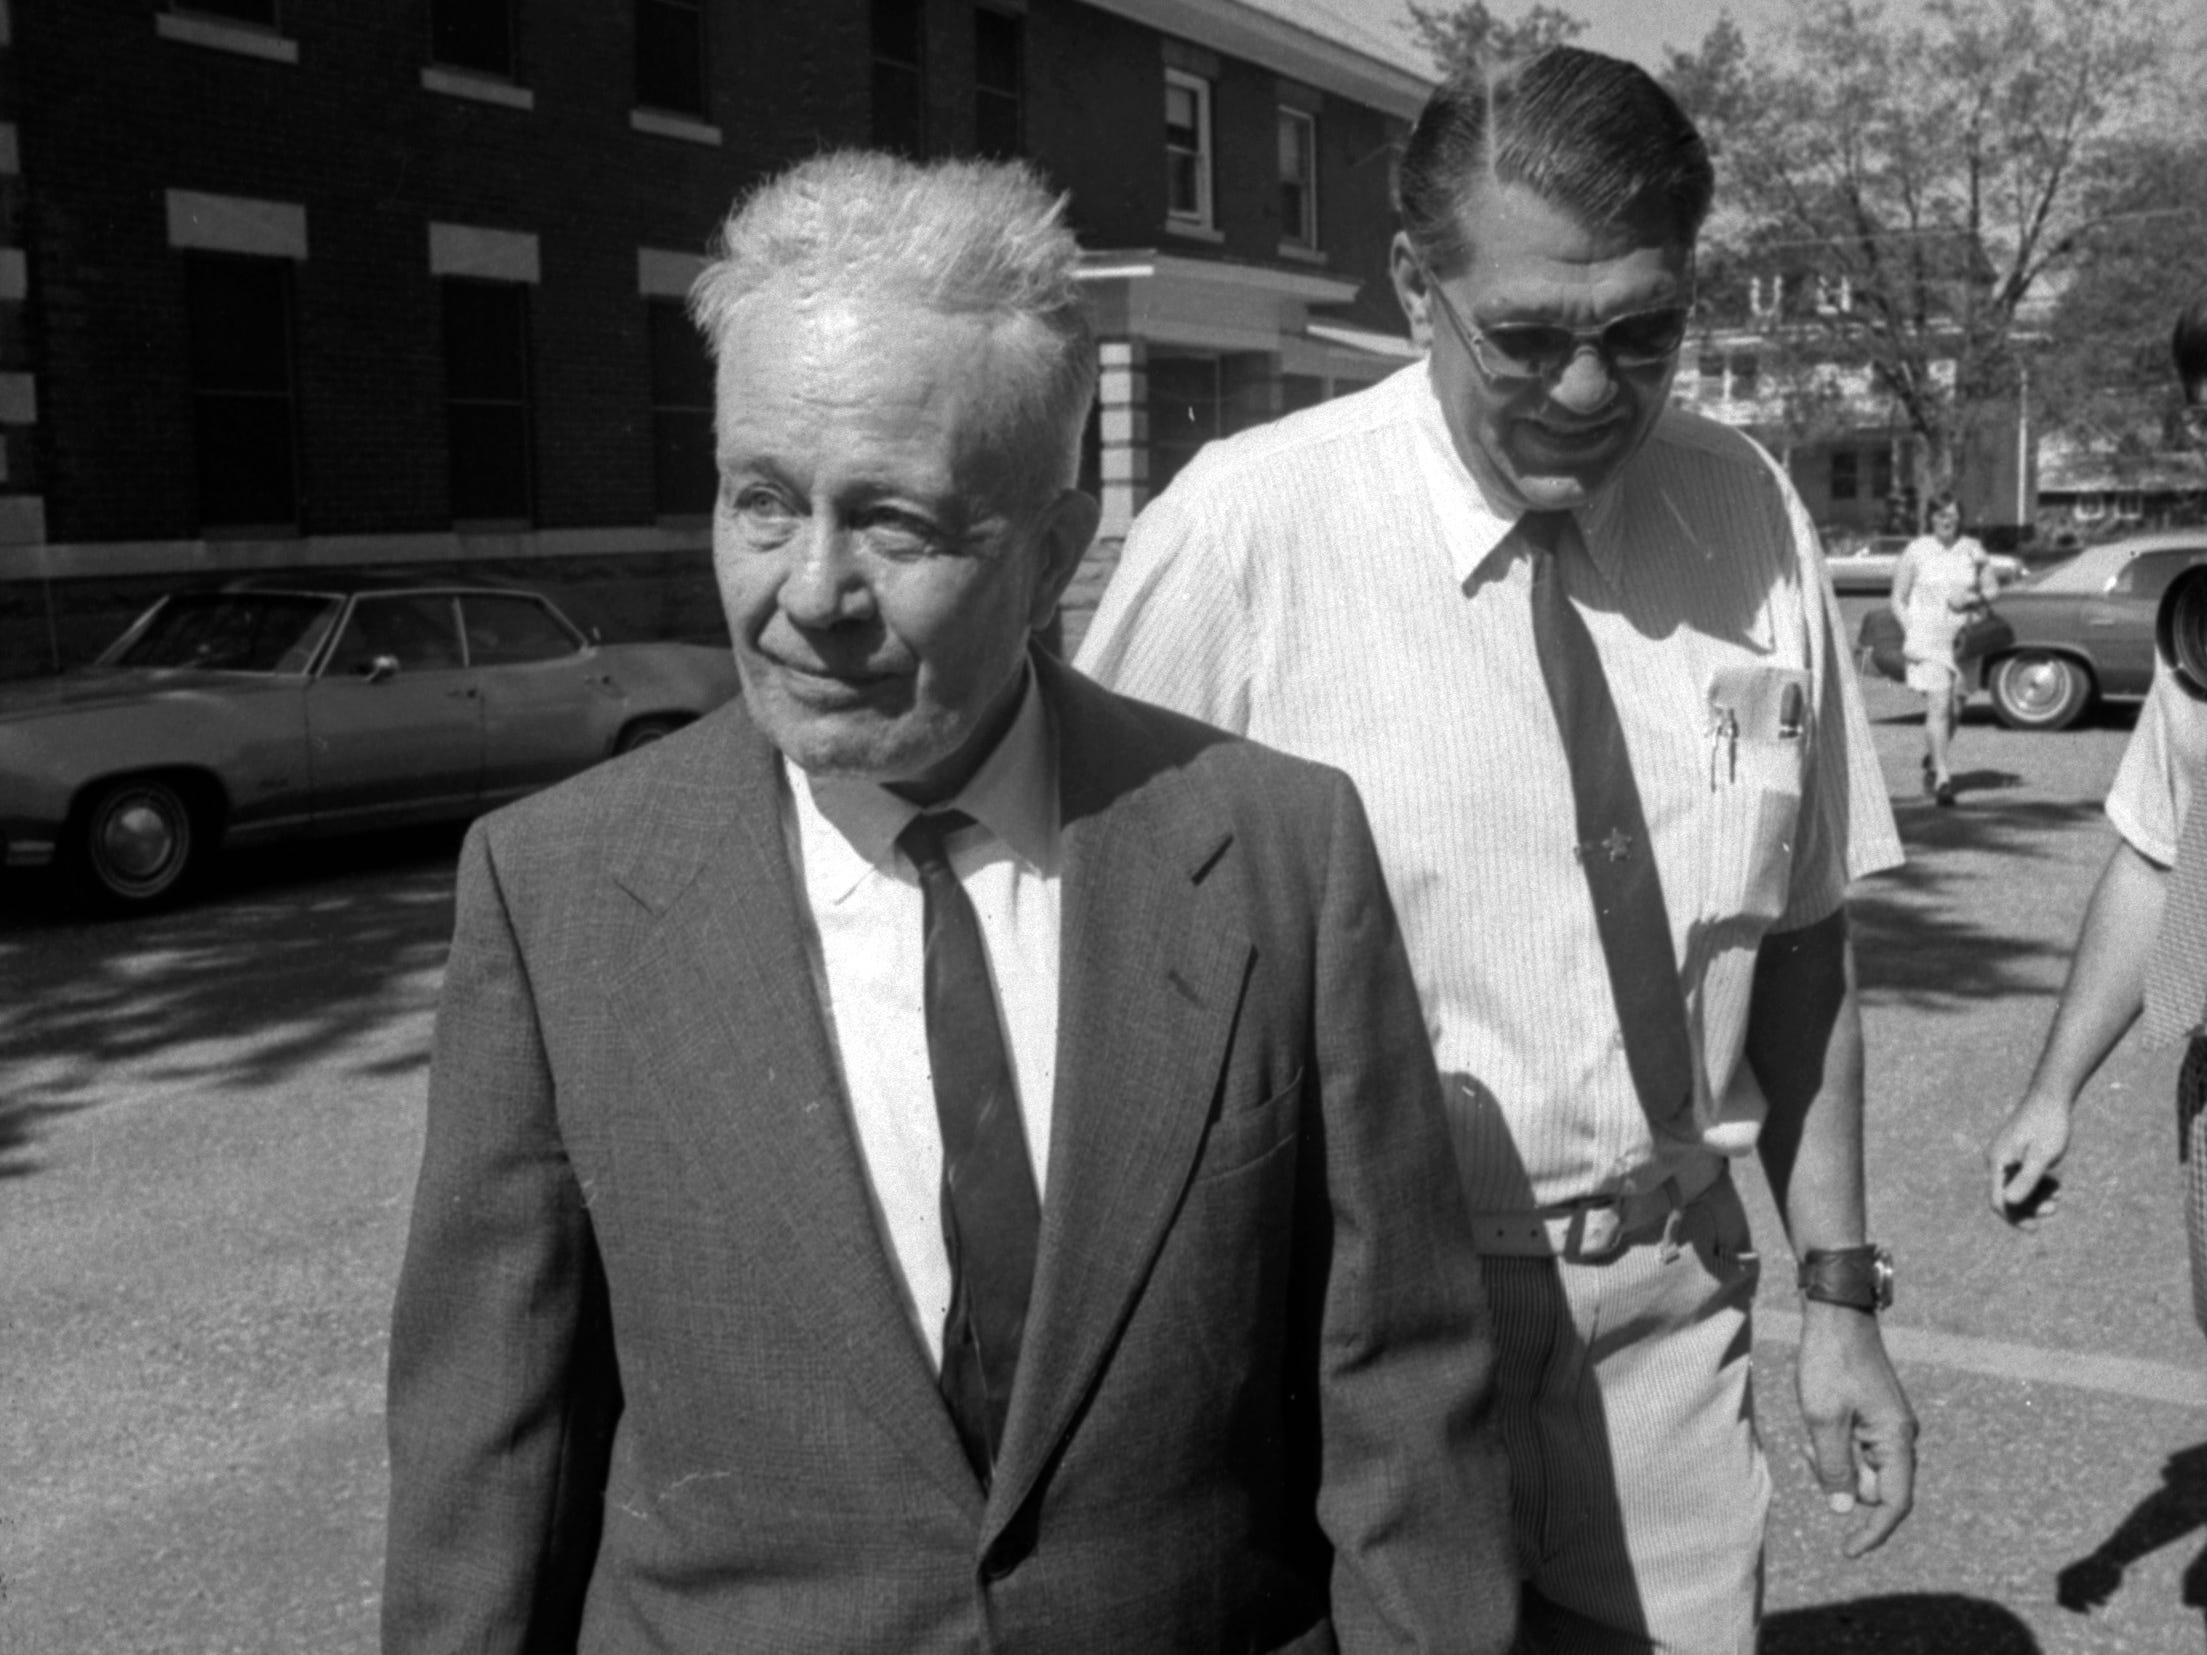 "Ed Gein was escorted by Waushara County Sheriff Virgil Batterman (right) as he arrived for a sanity hearing in Wautoma in 1974."" He was in court to try to be released after 17 years at Central State mental hospital."